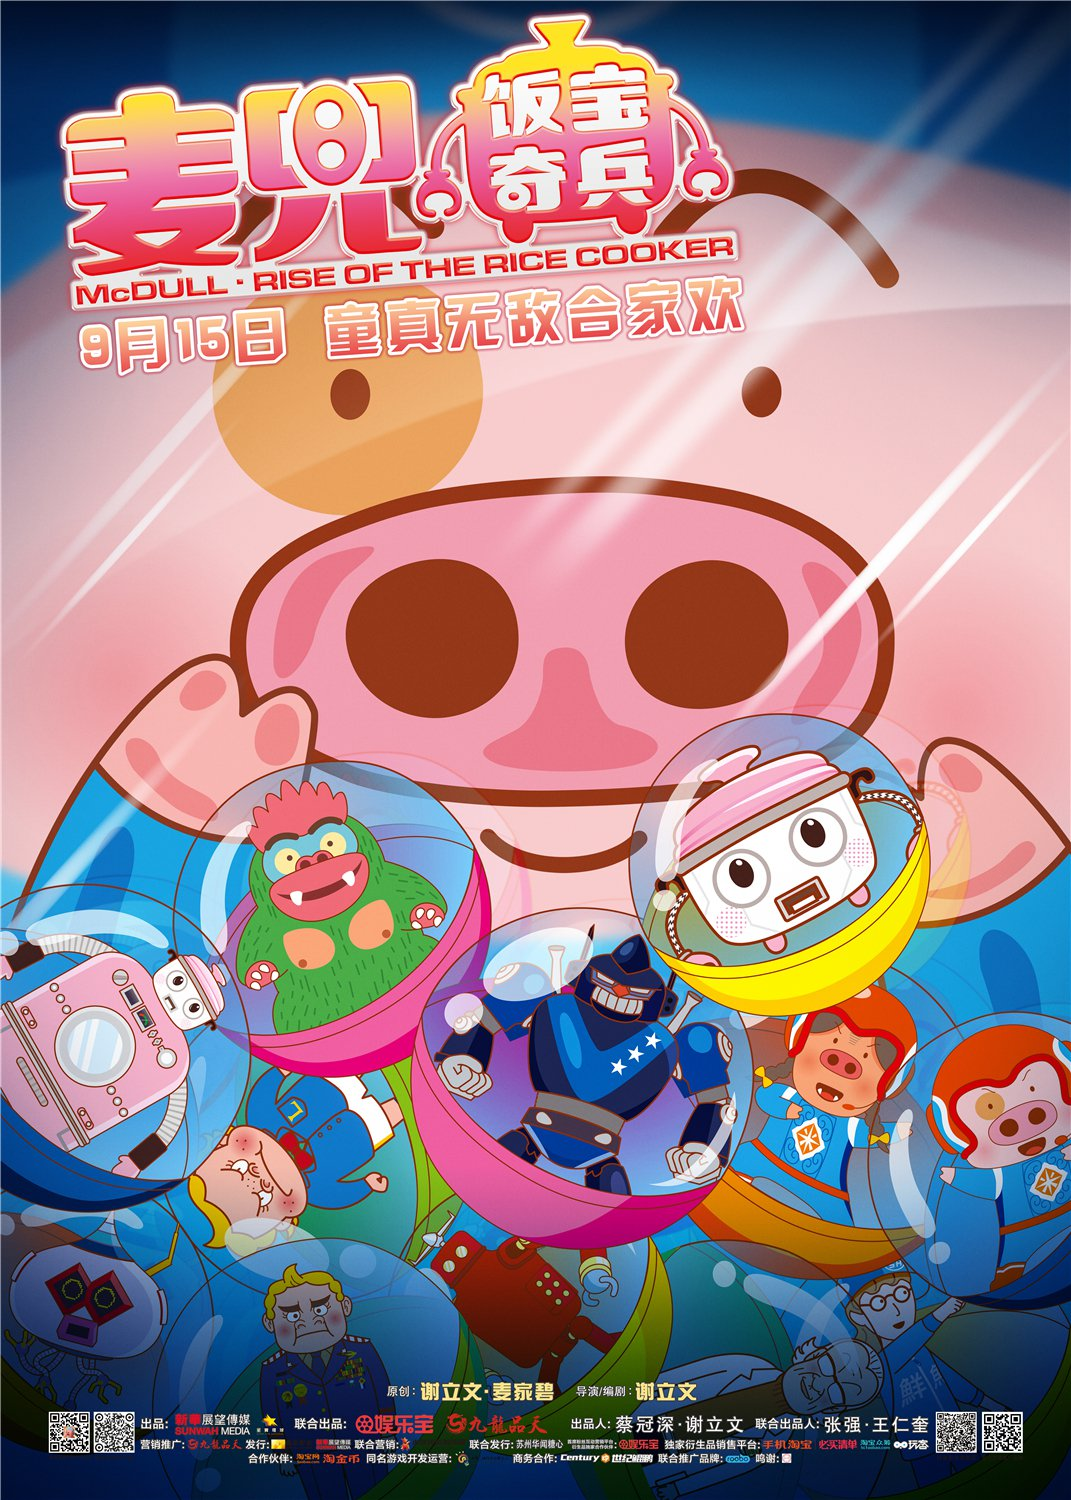 mcdull-rise-of-the-rice-cooker-2016